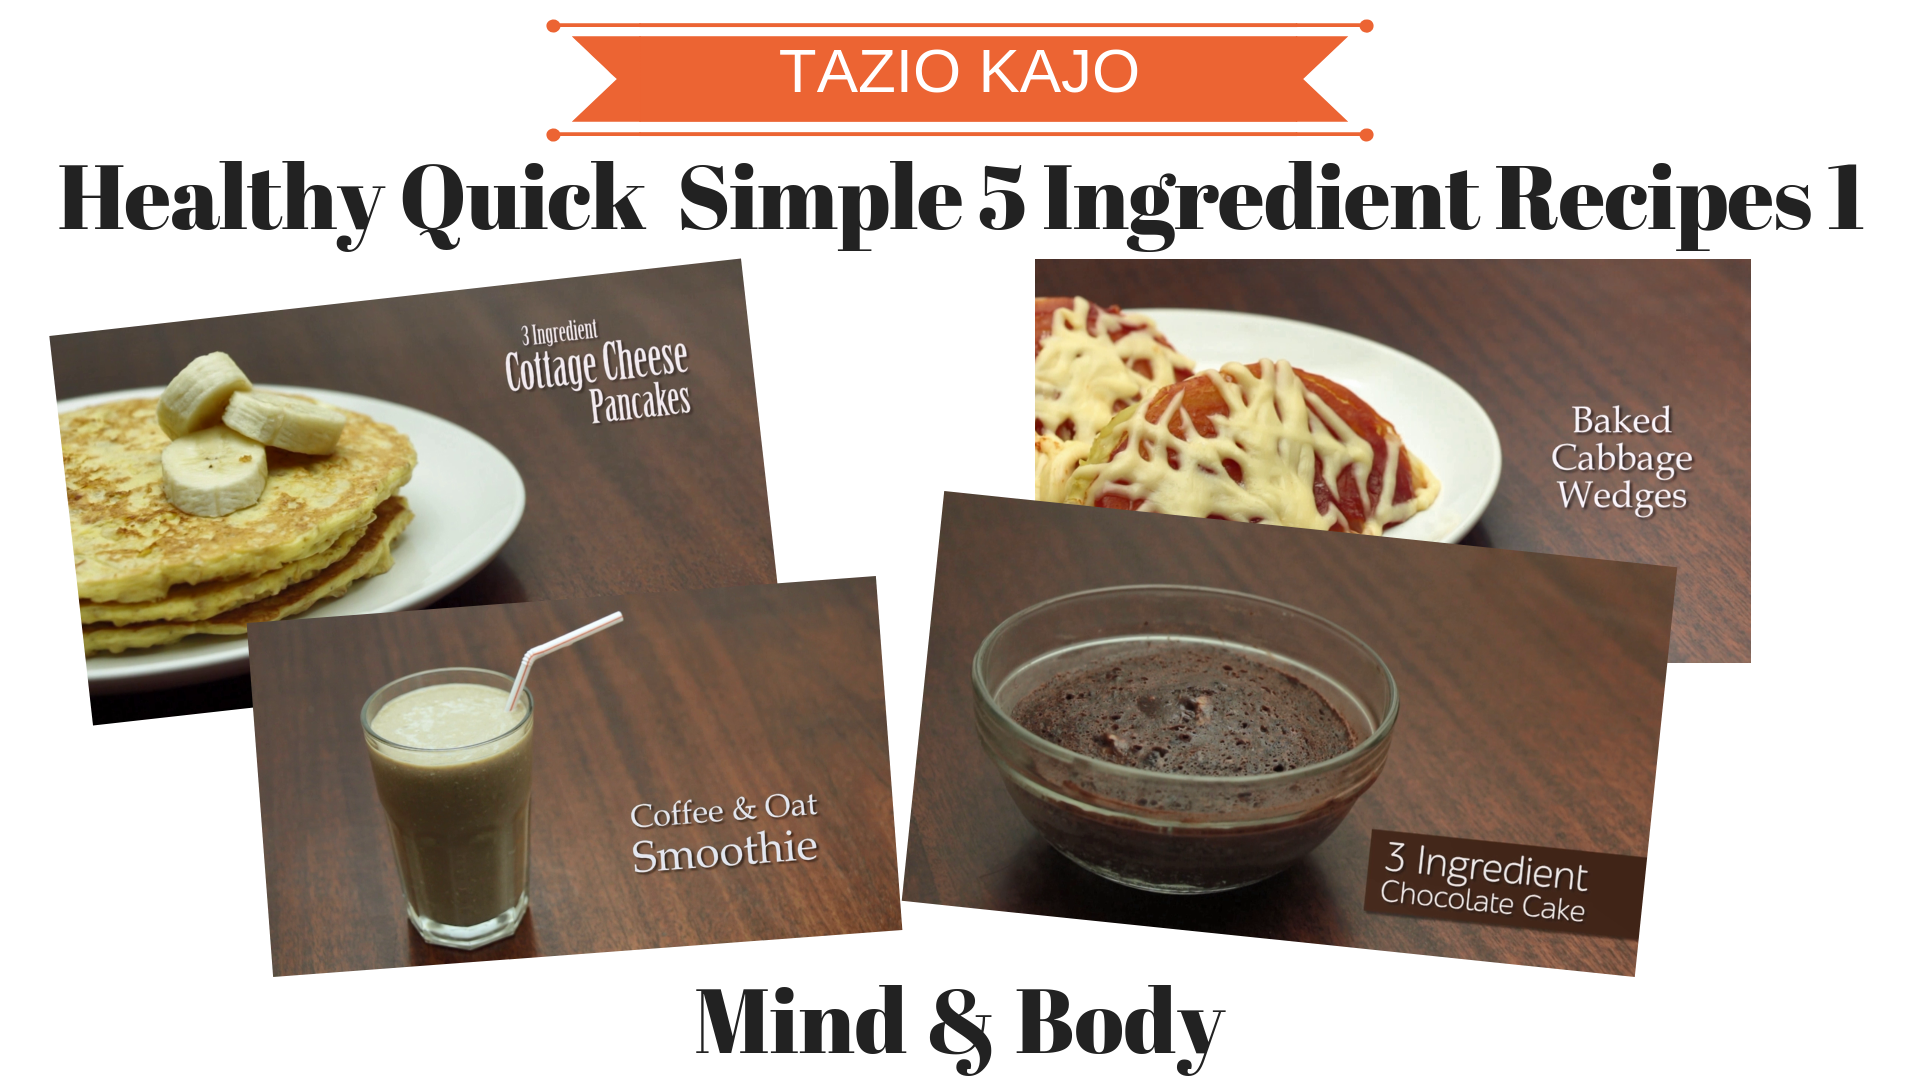 Healthy Quick & Simple 5 Ingredient Recipes Part 1